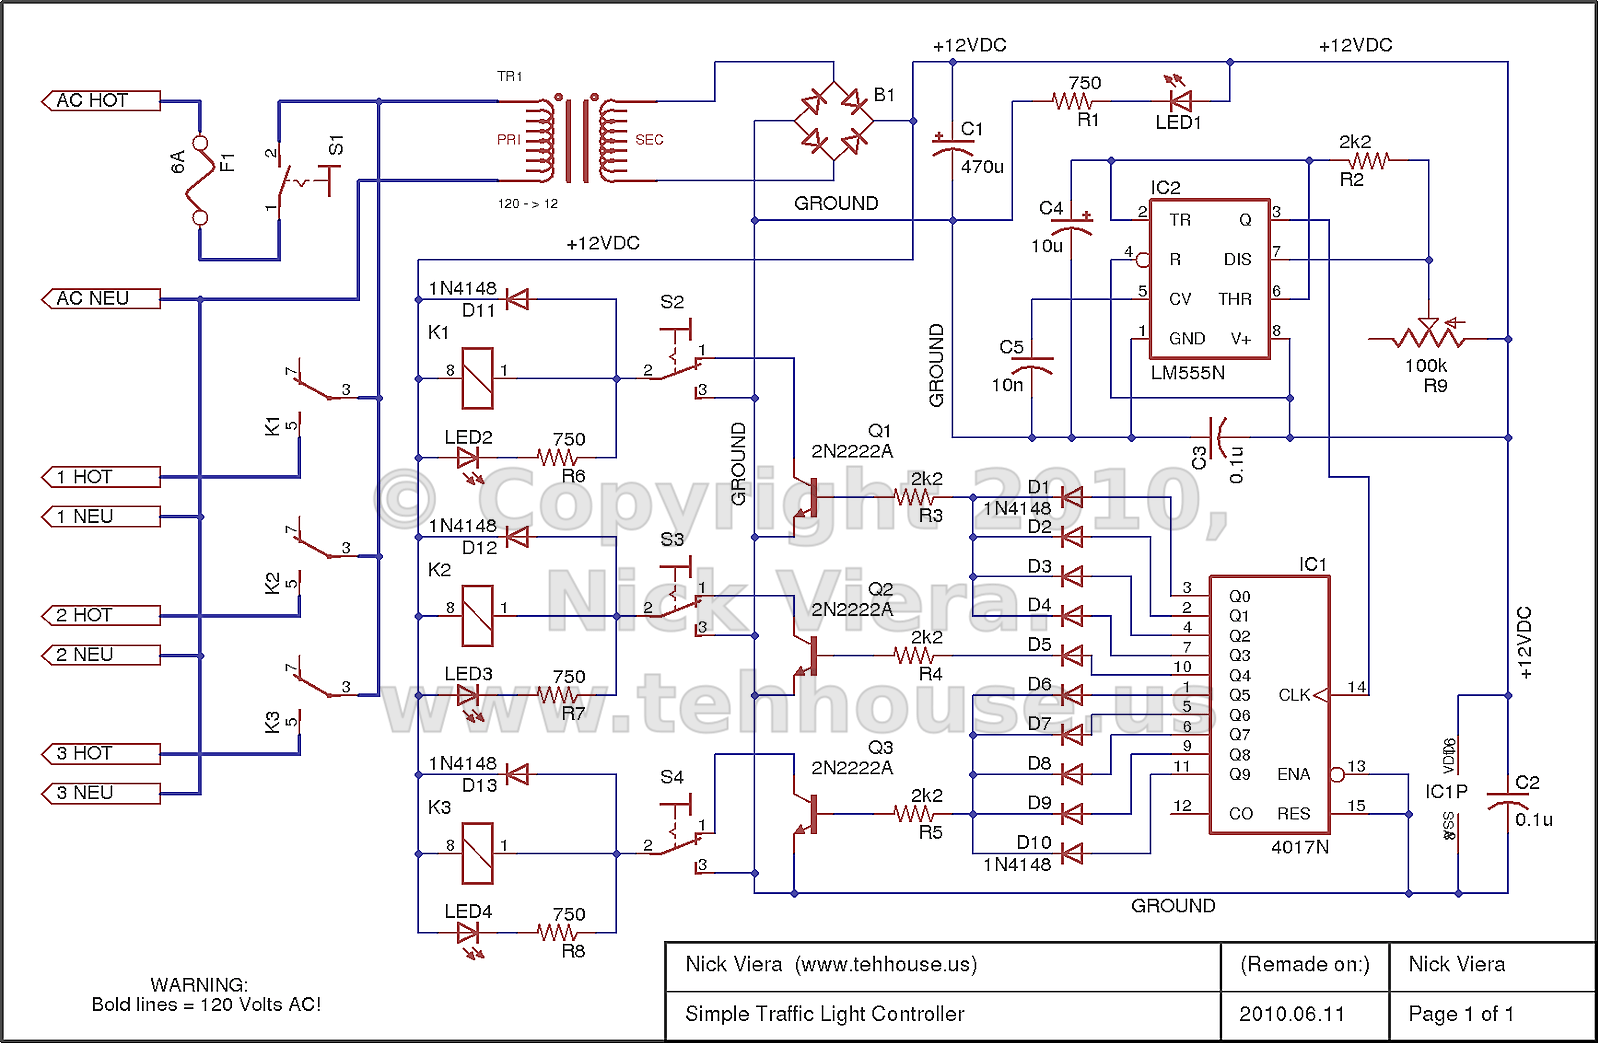 hight resolution of nick viera simple traffic light controller simple traffic light controller schematic